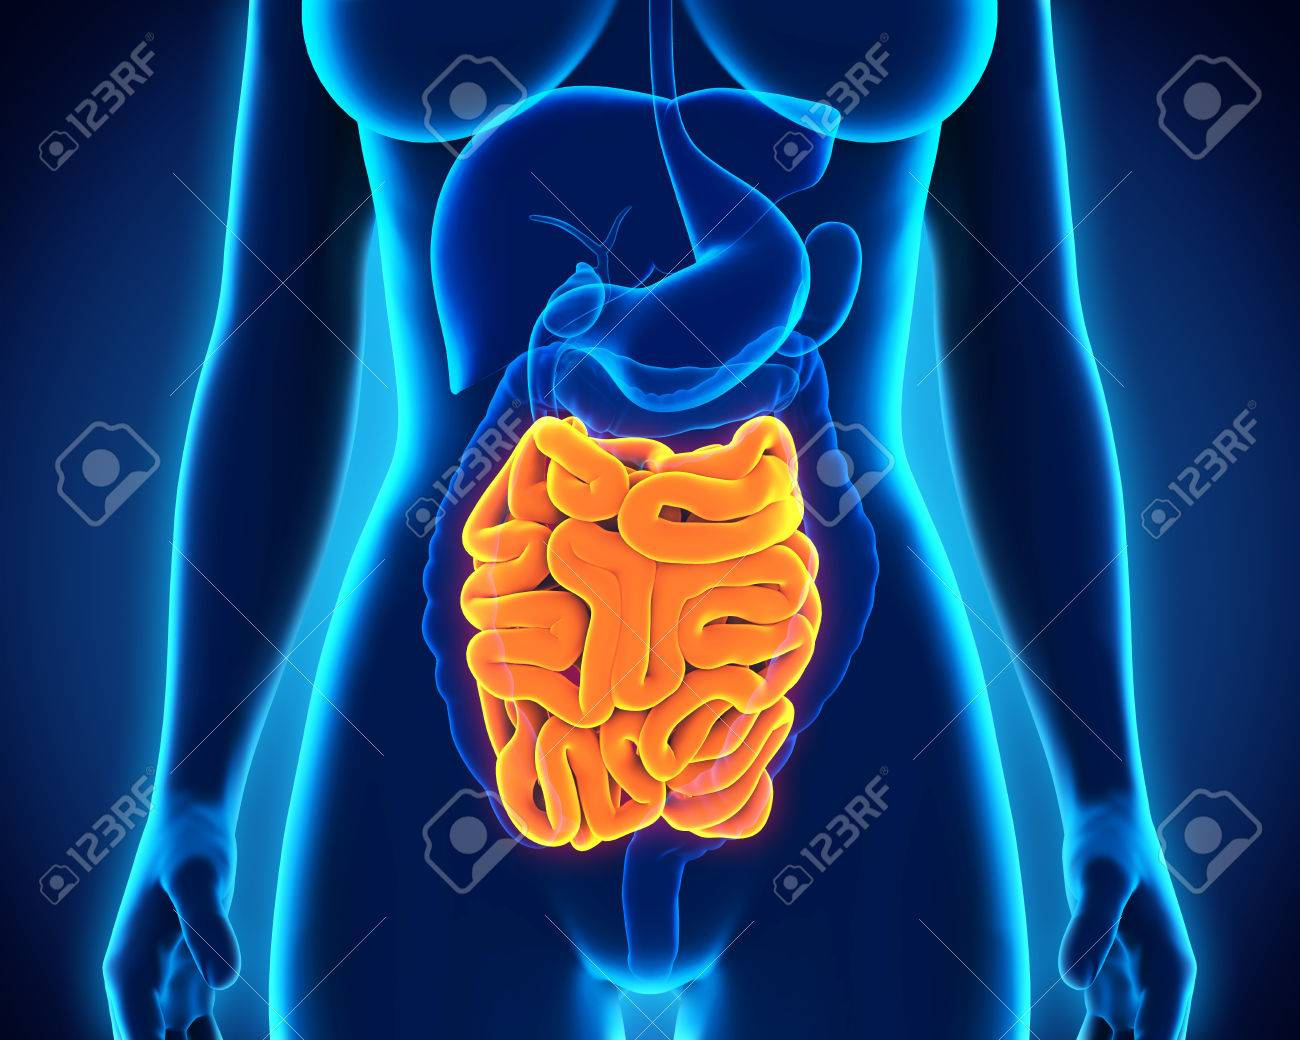 Human Small Intestine Anatomy Stock Photo Picture And Royalty Free